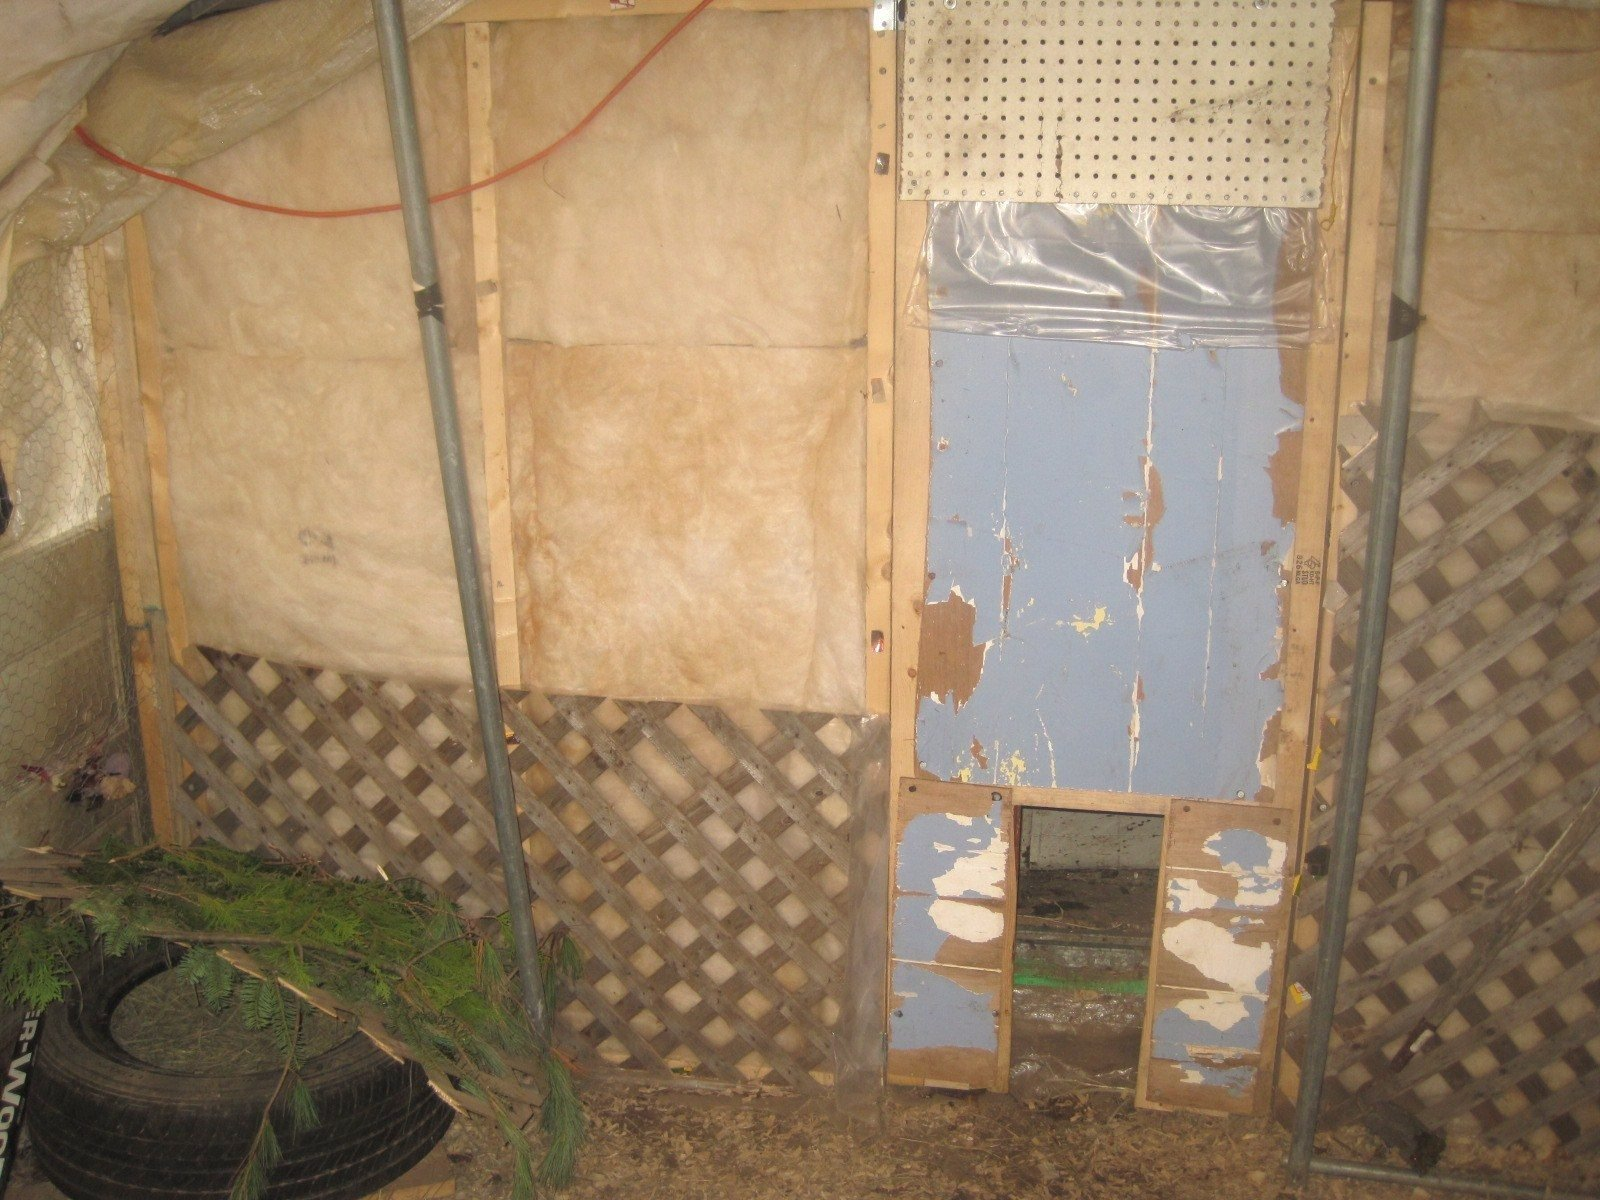 door closed. vents in top of door and with entrance for chickens